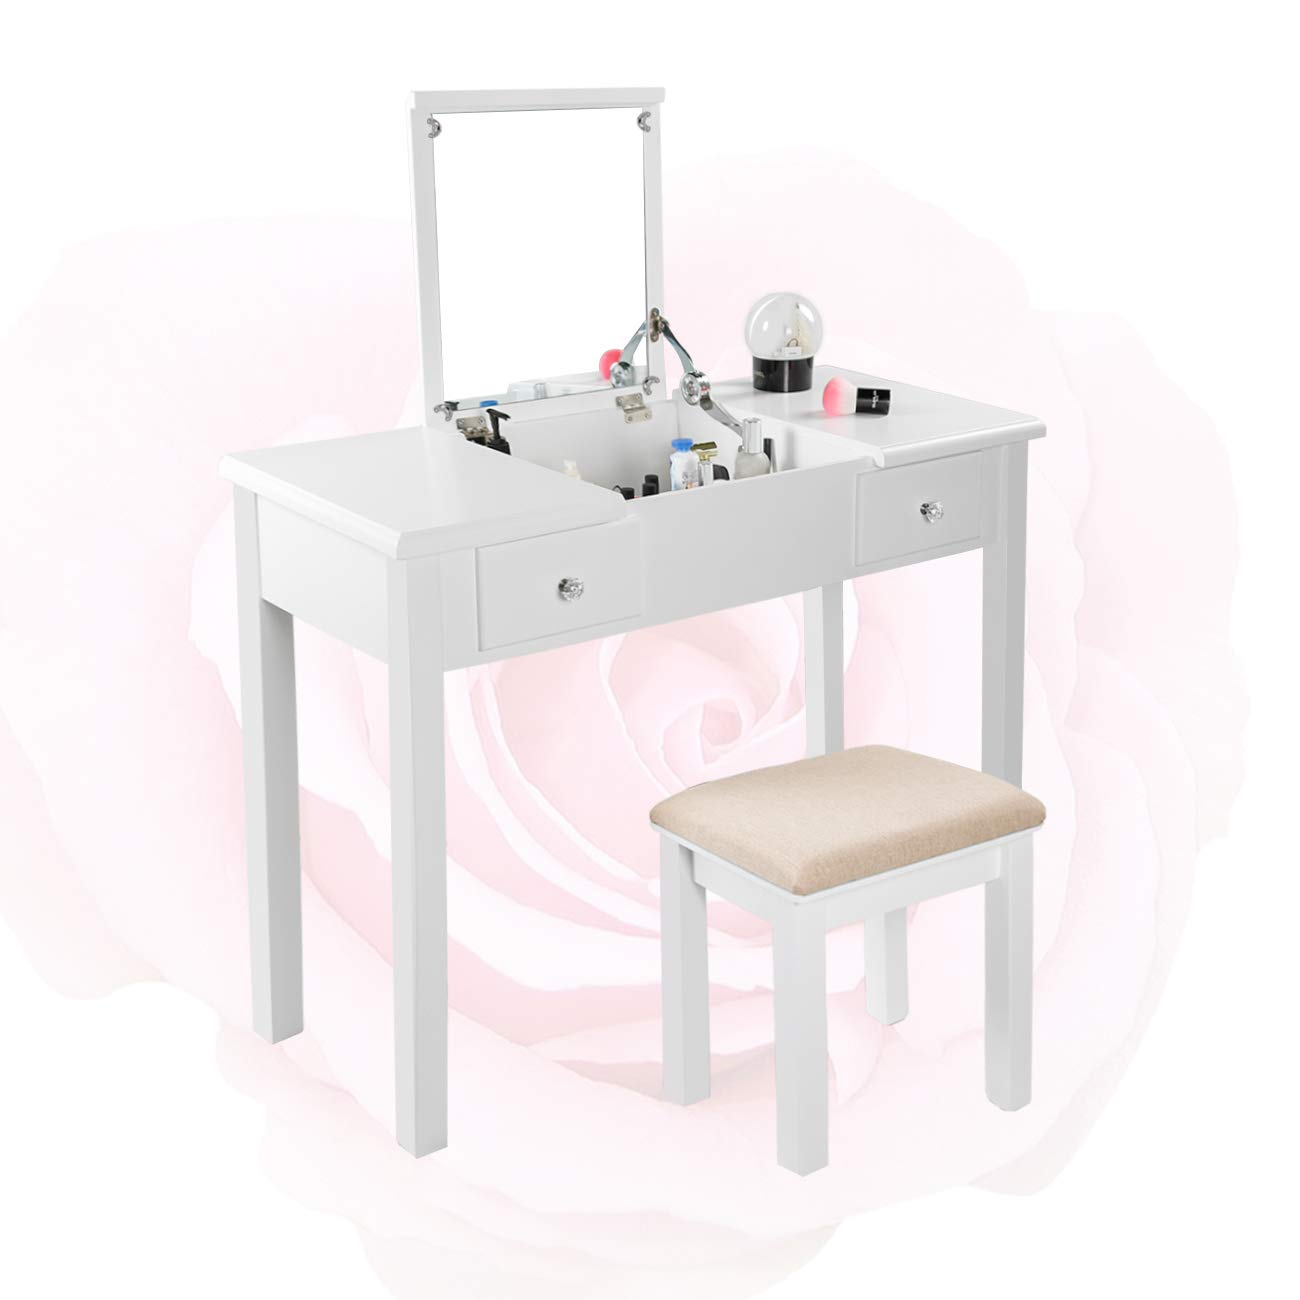 Vanity Beauty Station with Cushioned Beauty Stool Set, 3 Removable Organizers,W35.43 x D15.75 x H30.31 (White)